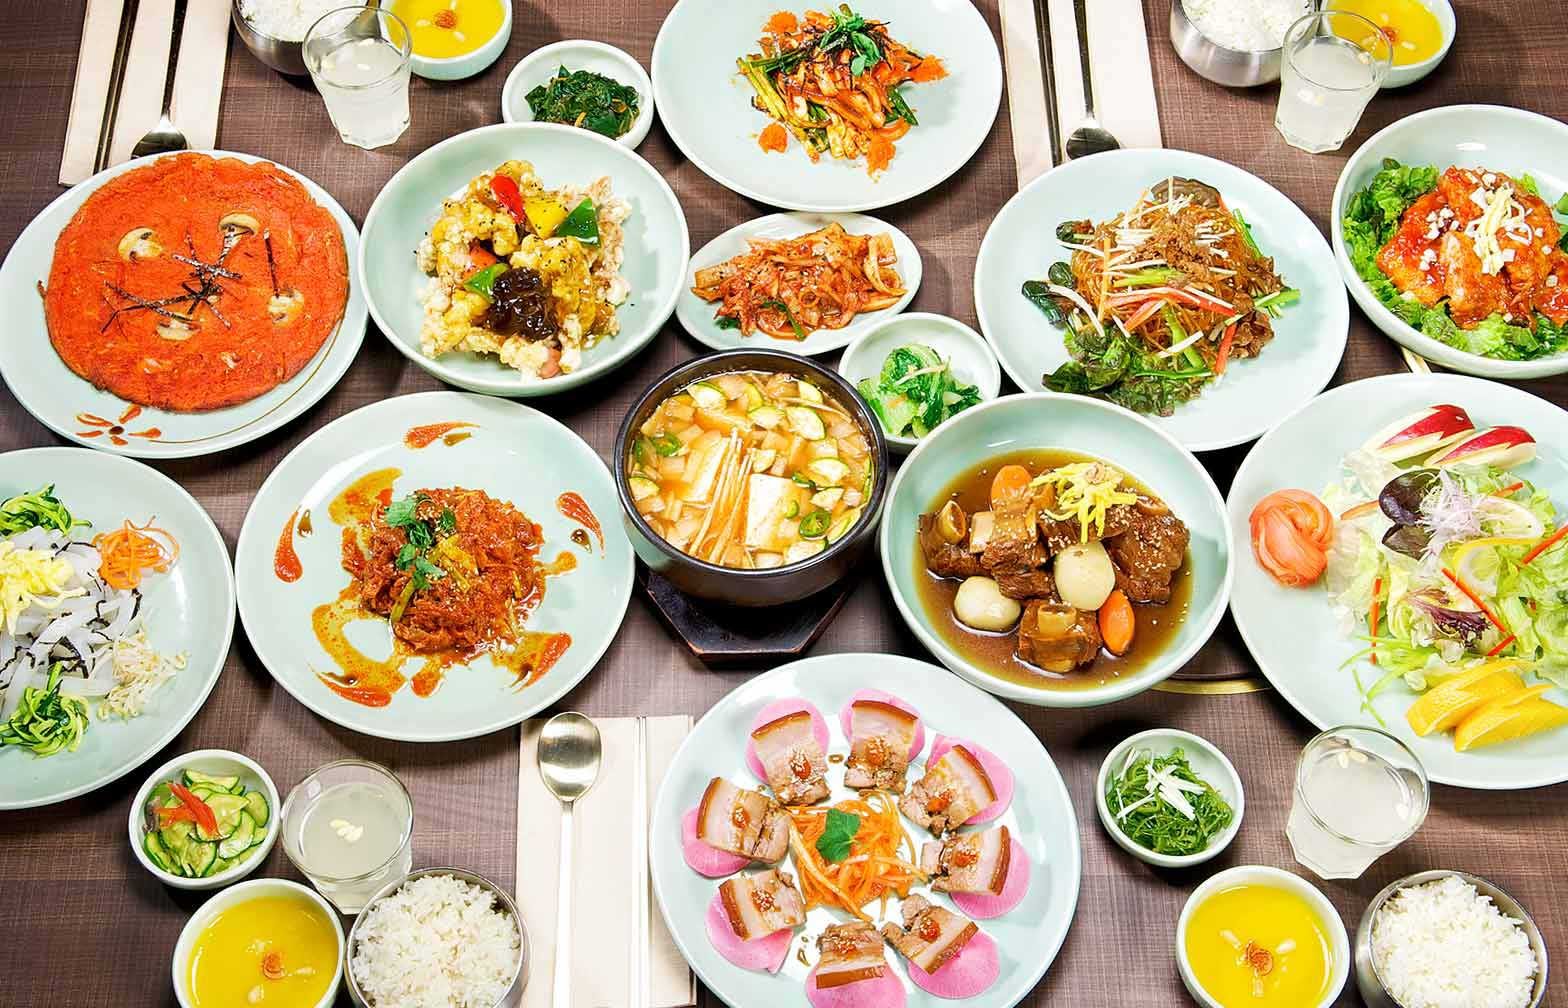 Sura korean royal cuisine restaurant menu vancouver for Cuisine restaurant